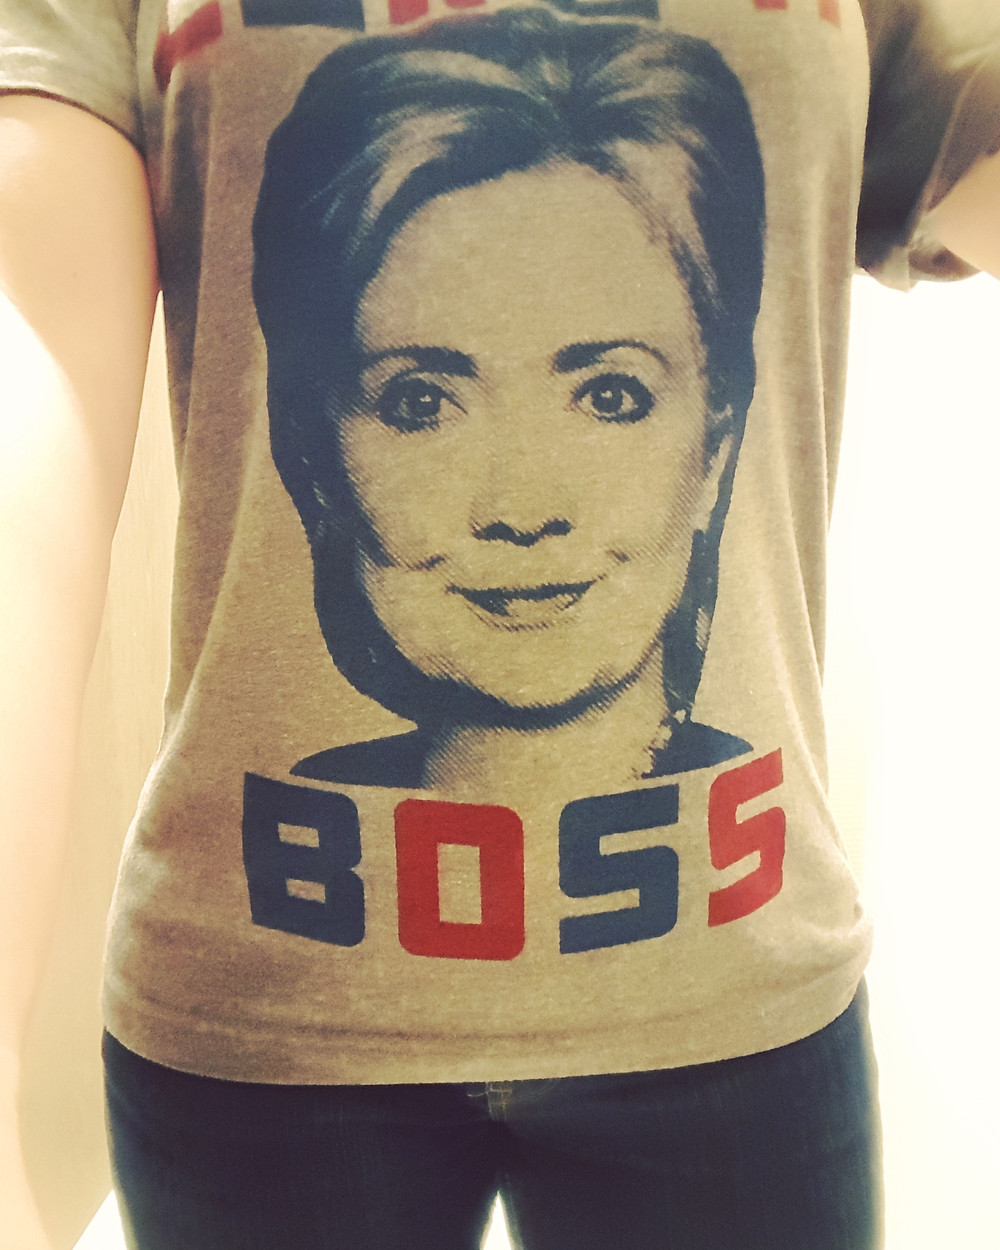 Like a Boss shirt with Hillary's face